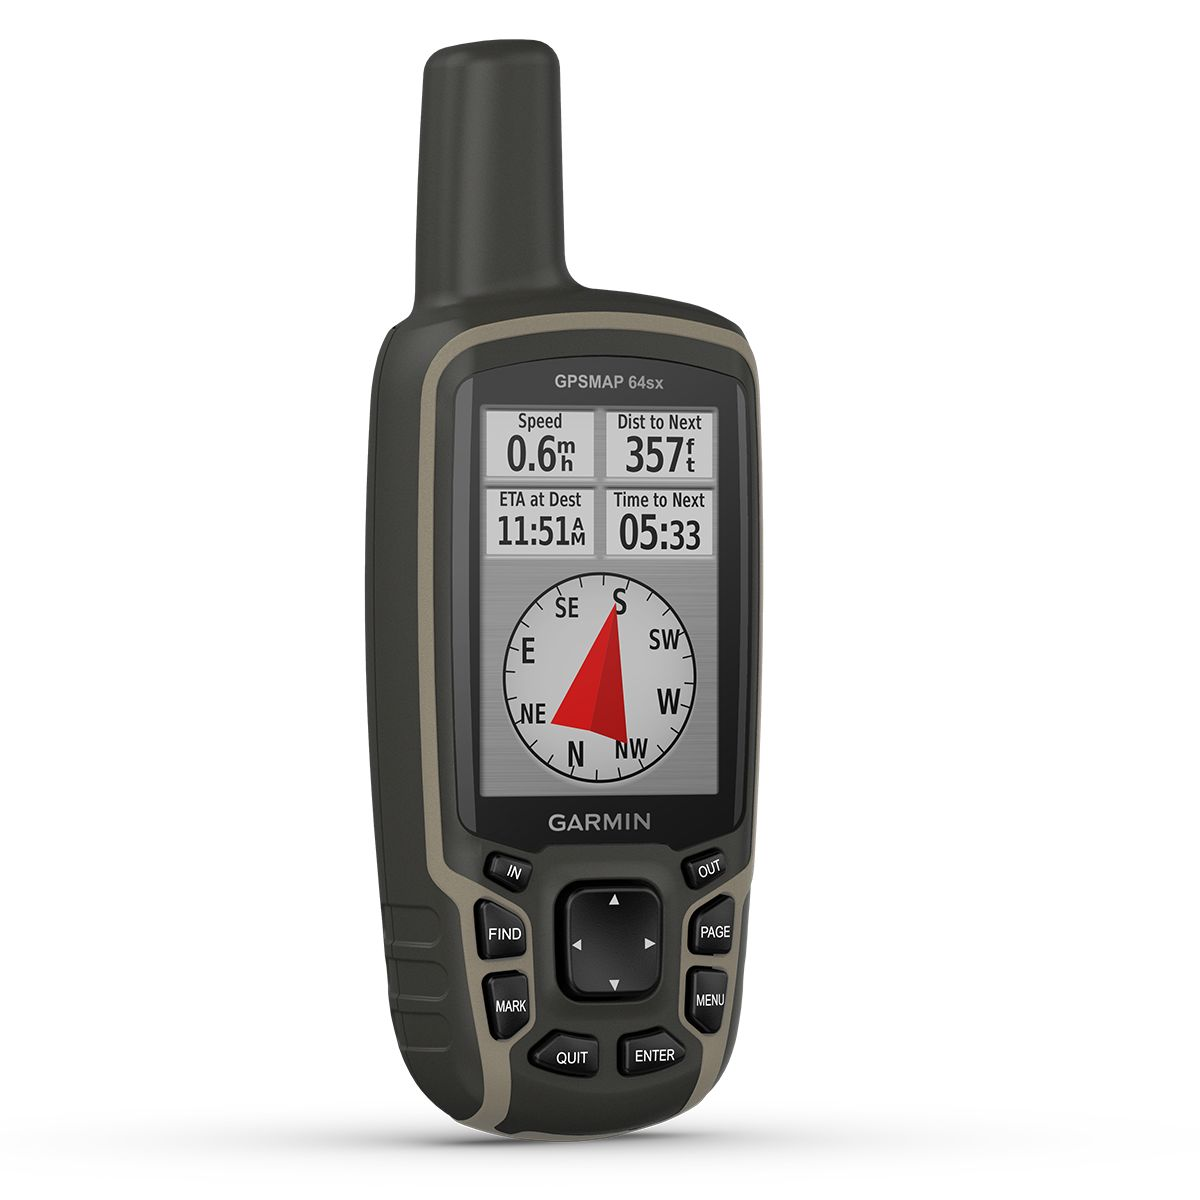 Garmin GPSMAP 64sx GPS Device | Computer Battery and Charger